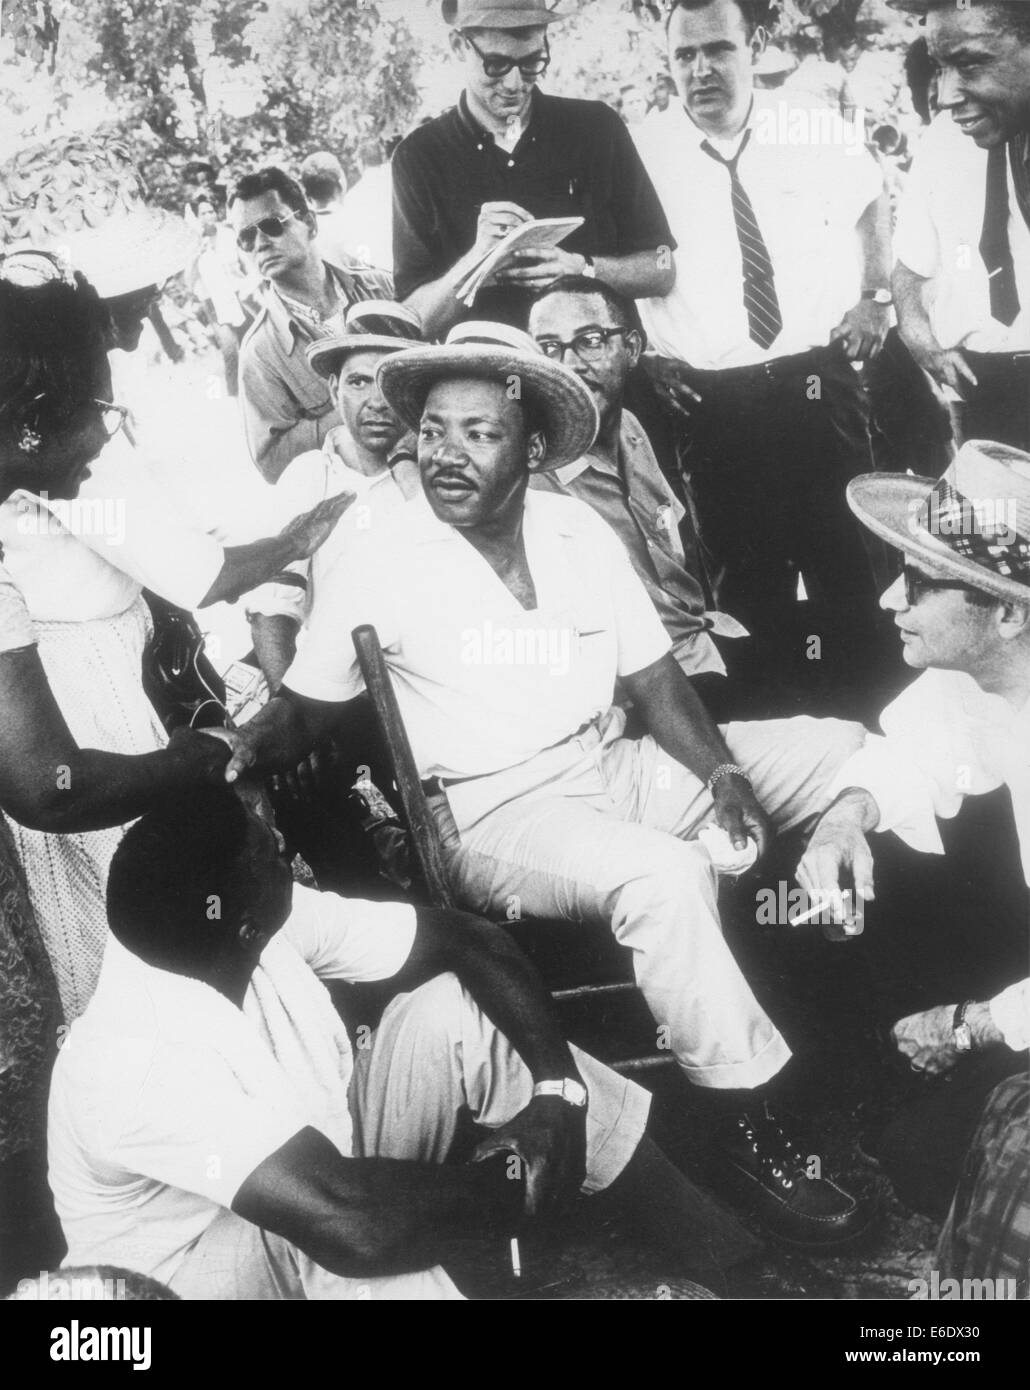 Martin Luther King, Jr in Straw Hat Sitting Down with Group of Men While Shaking Hands with Woman, circa 1960's Stock Photo